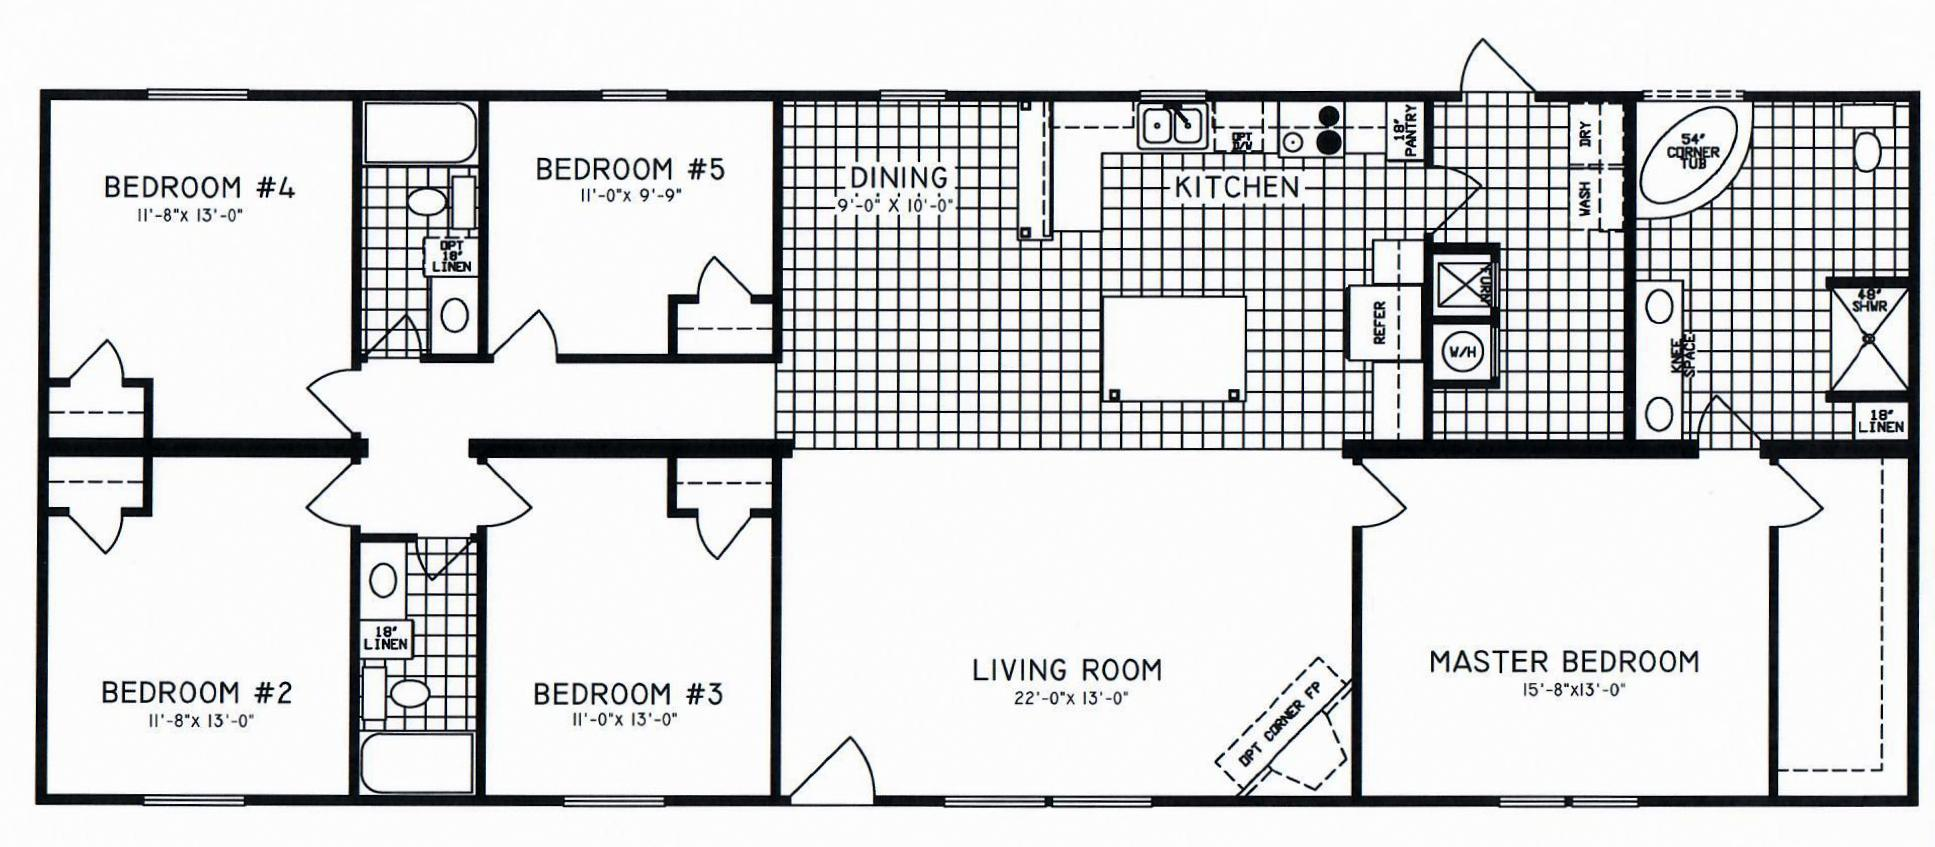 5 Bedroom Floor Plans Modular And Manufactured Homes Archives Hawks Homes